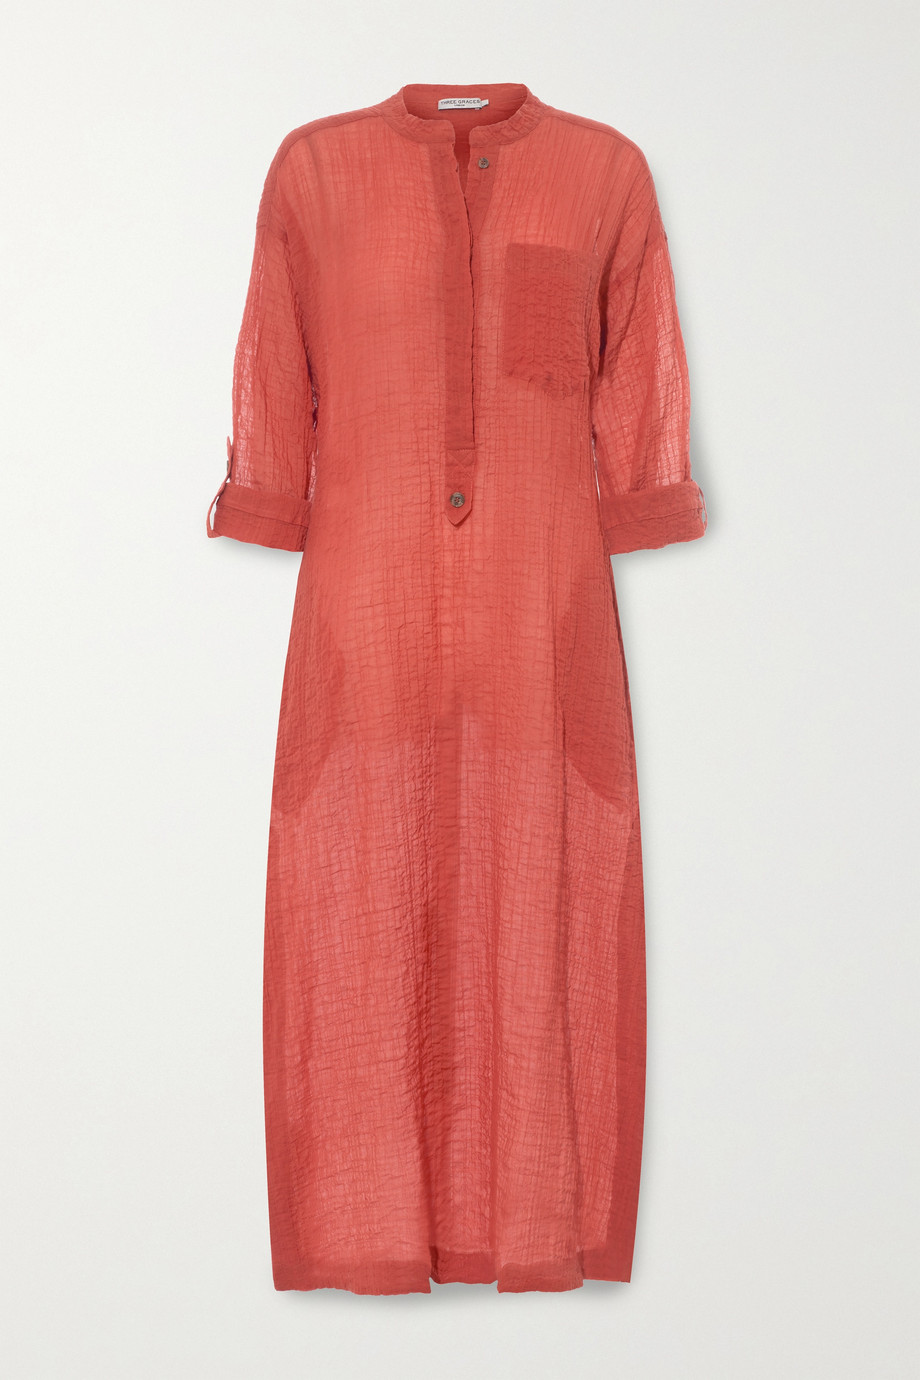 Three Graces London August crinkled cotton-voile kaftan